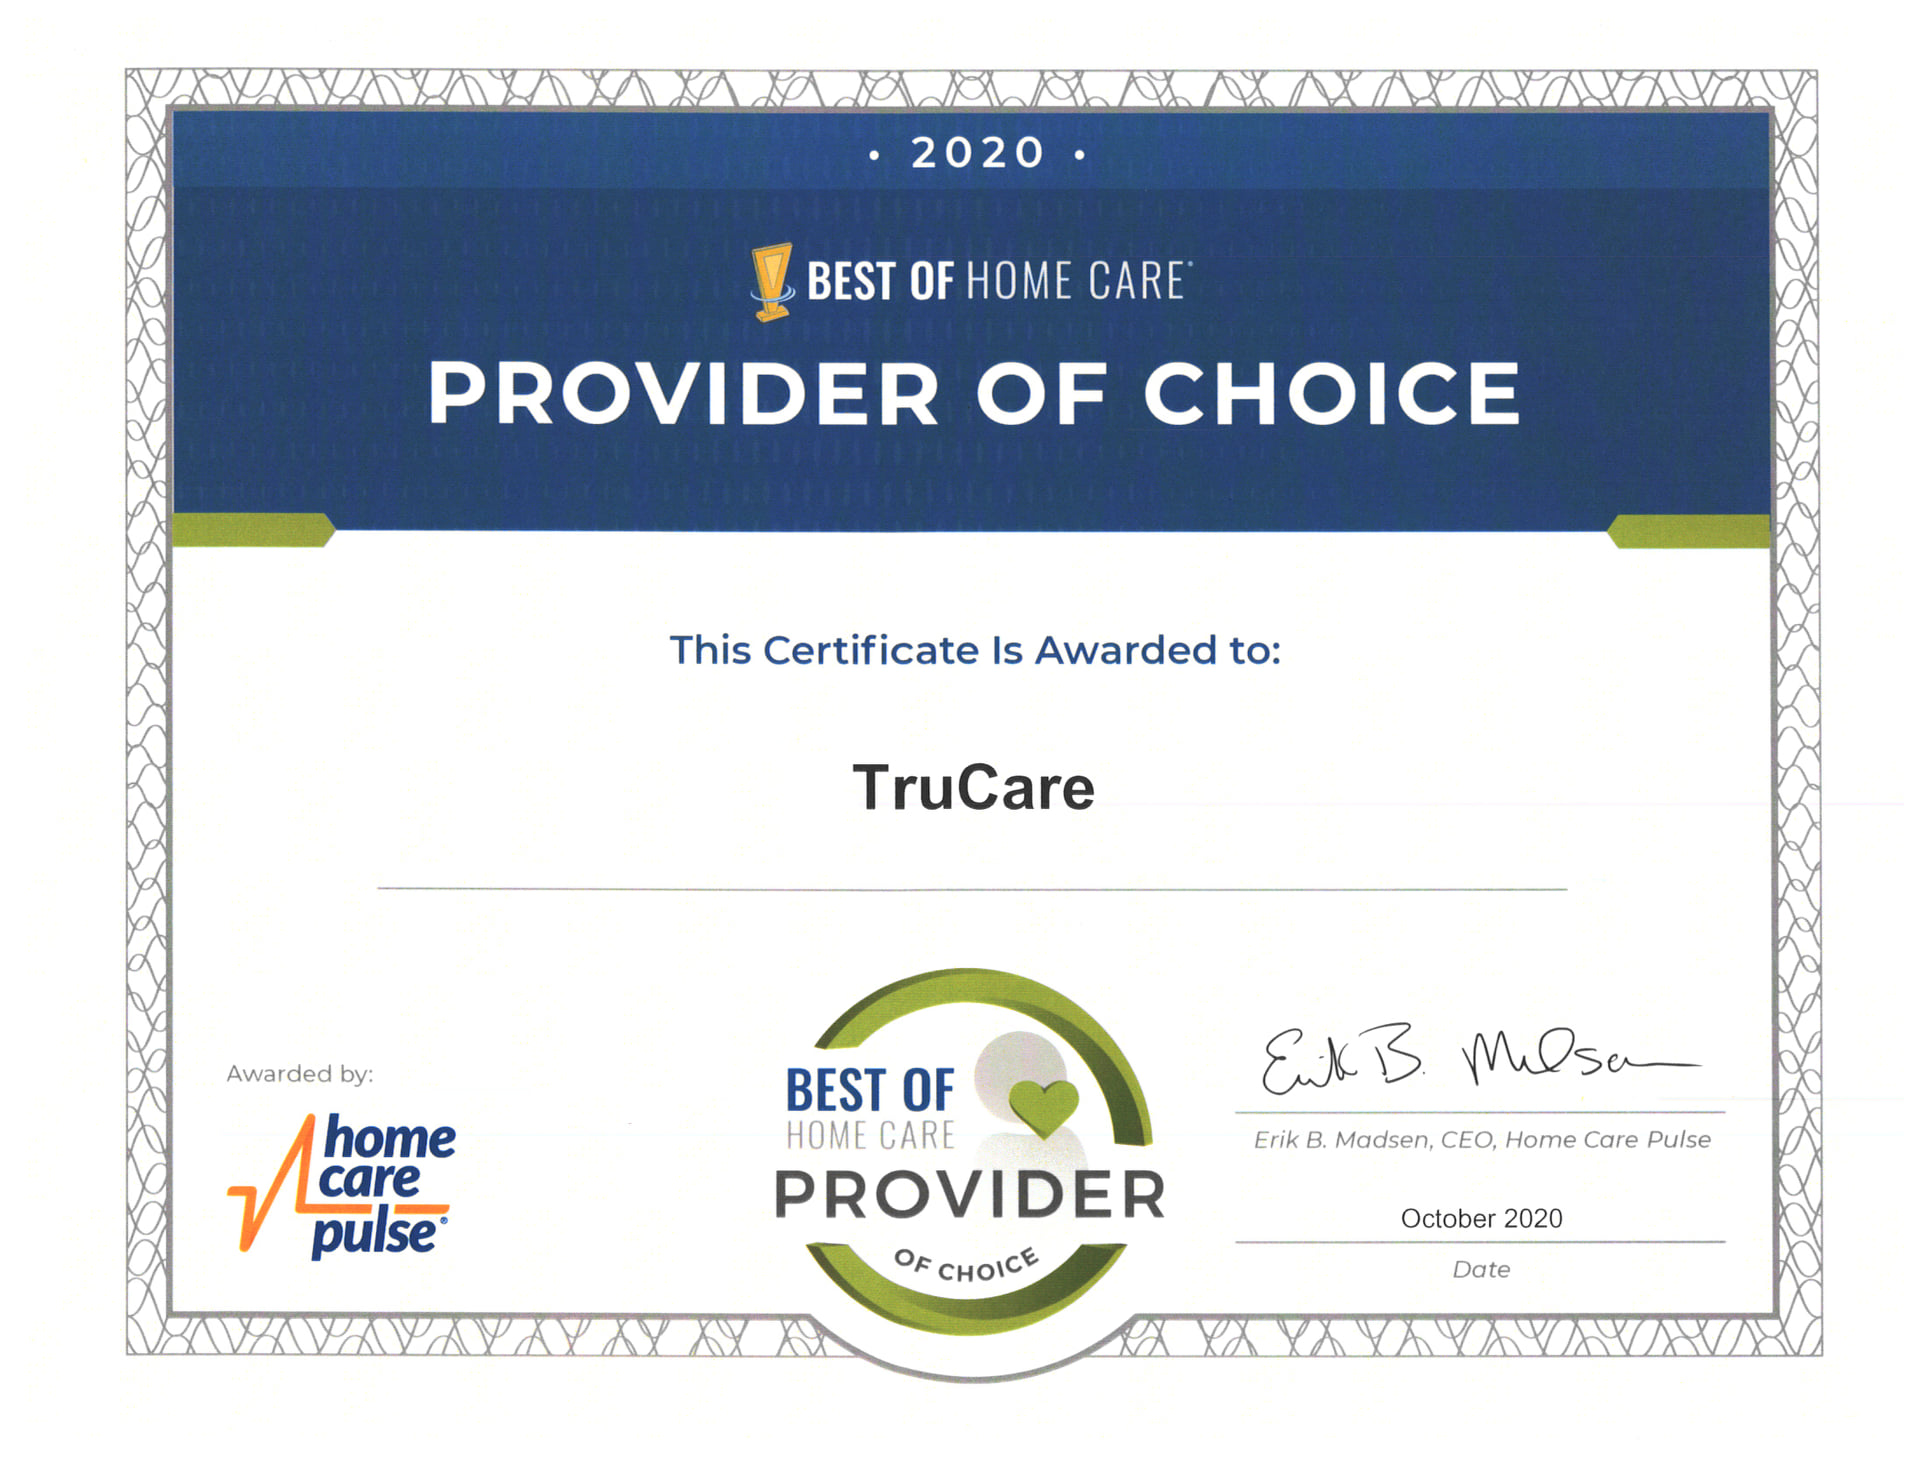 Provider of Choice award for 2020